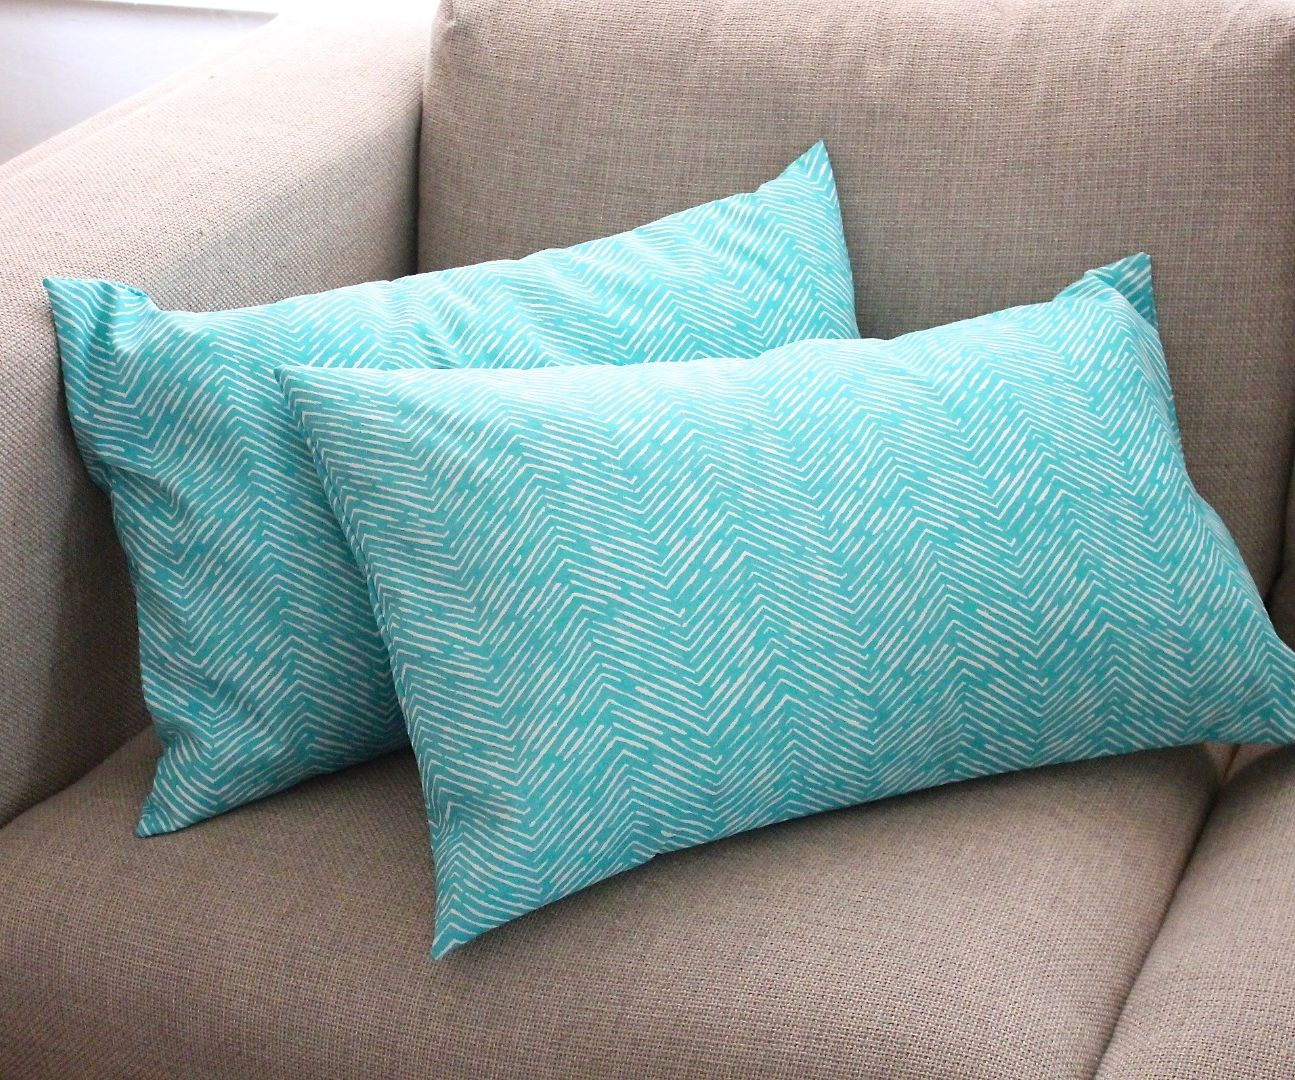 How To Sew An Envelope Pillow Cover 8 Steps With Pictures